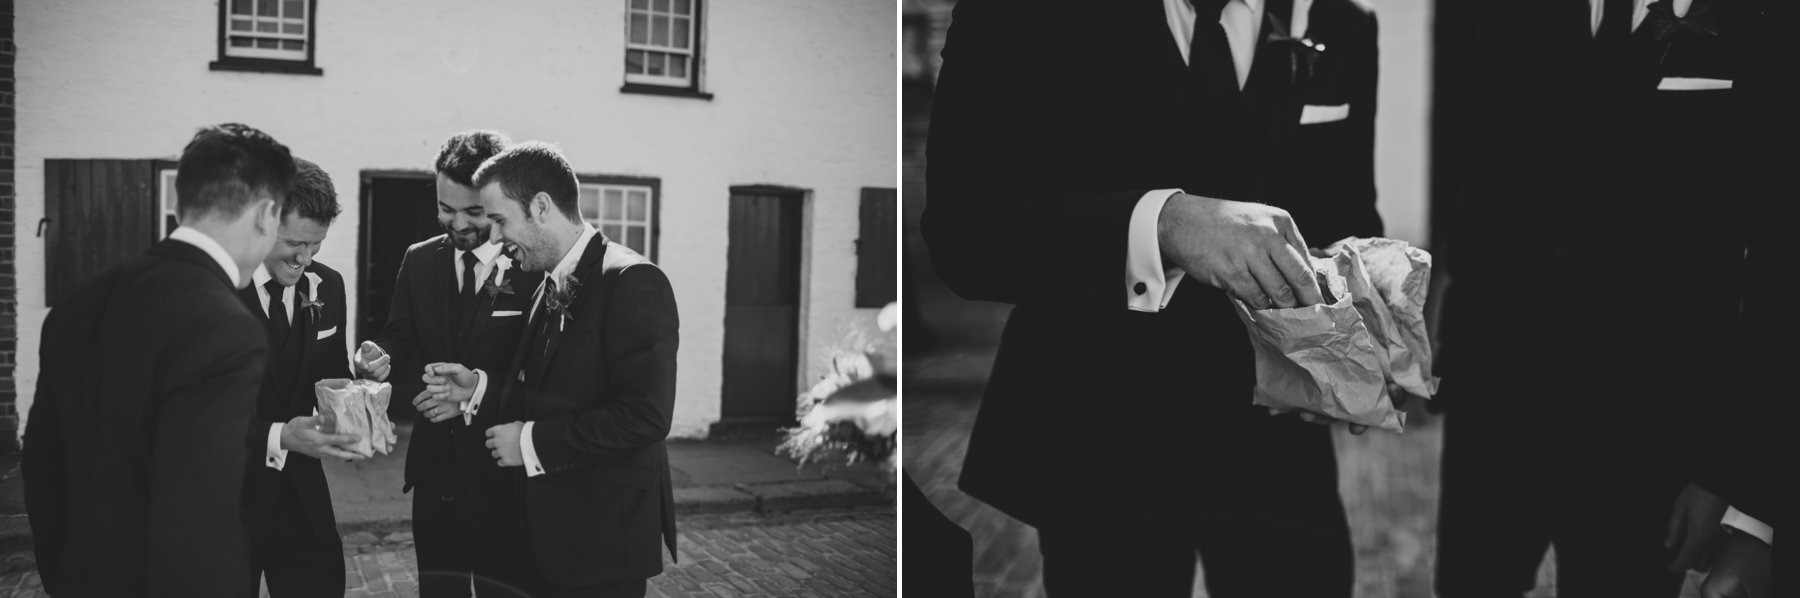 editorial-giantscauseway-weddings_0307